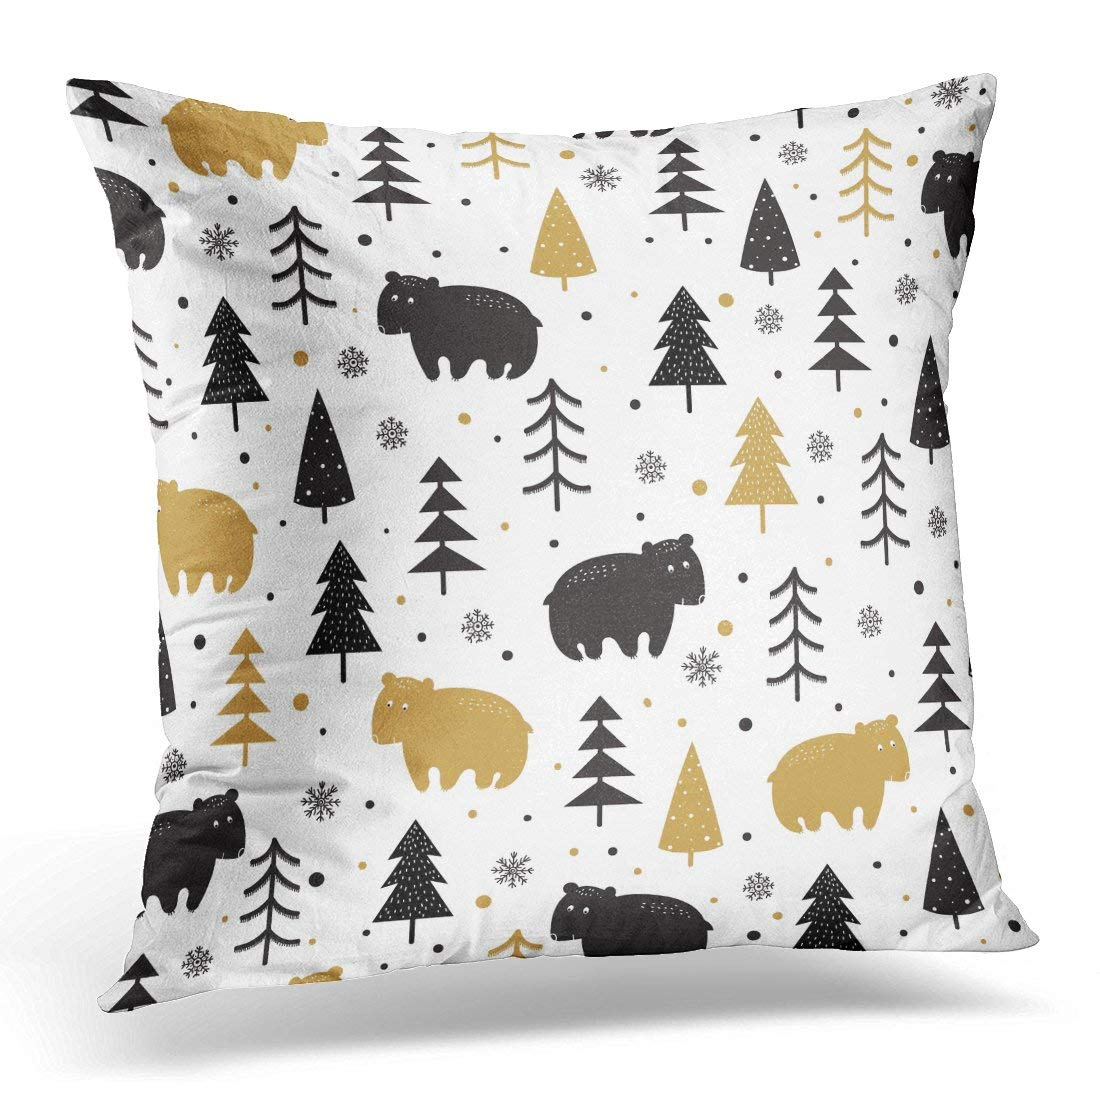 USART Cute with Bears and Trees in Black and Gold on White Scandinavian Style Animal Pillow Case Pillow Cover 20x20 inch